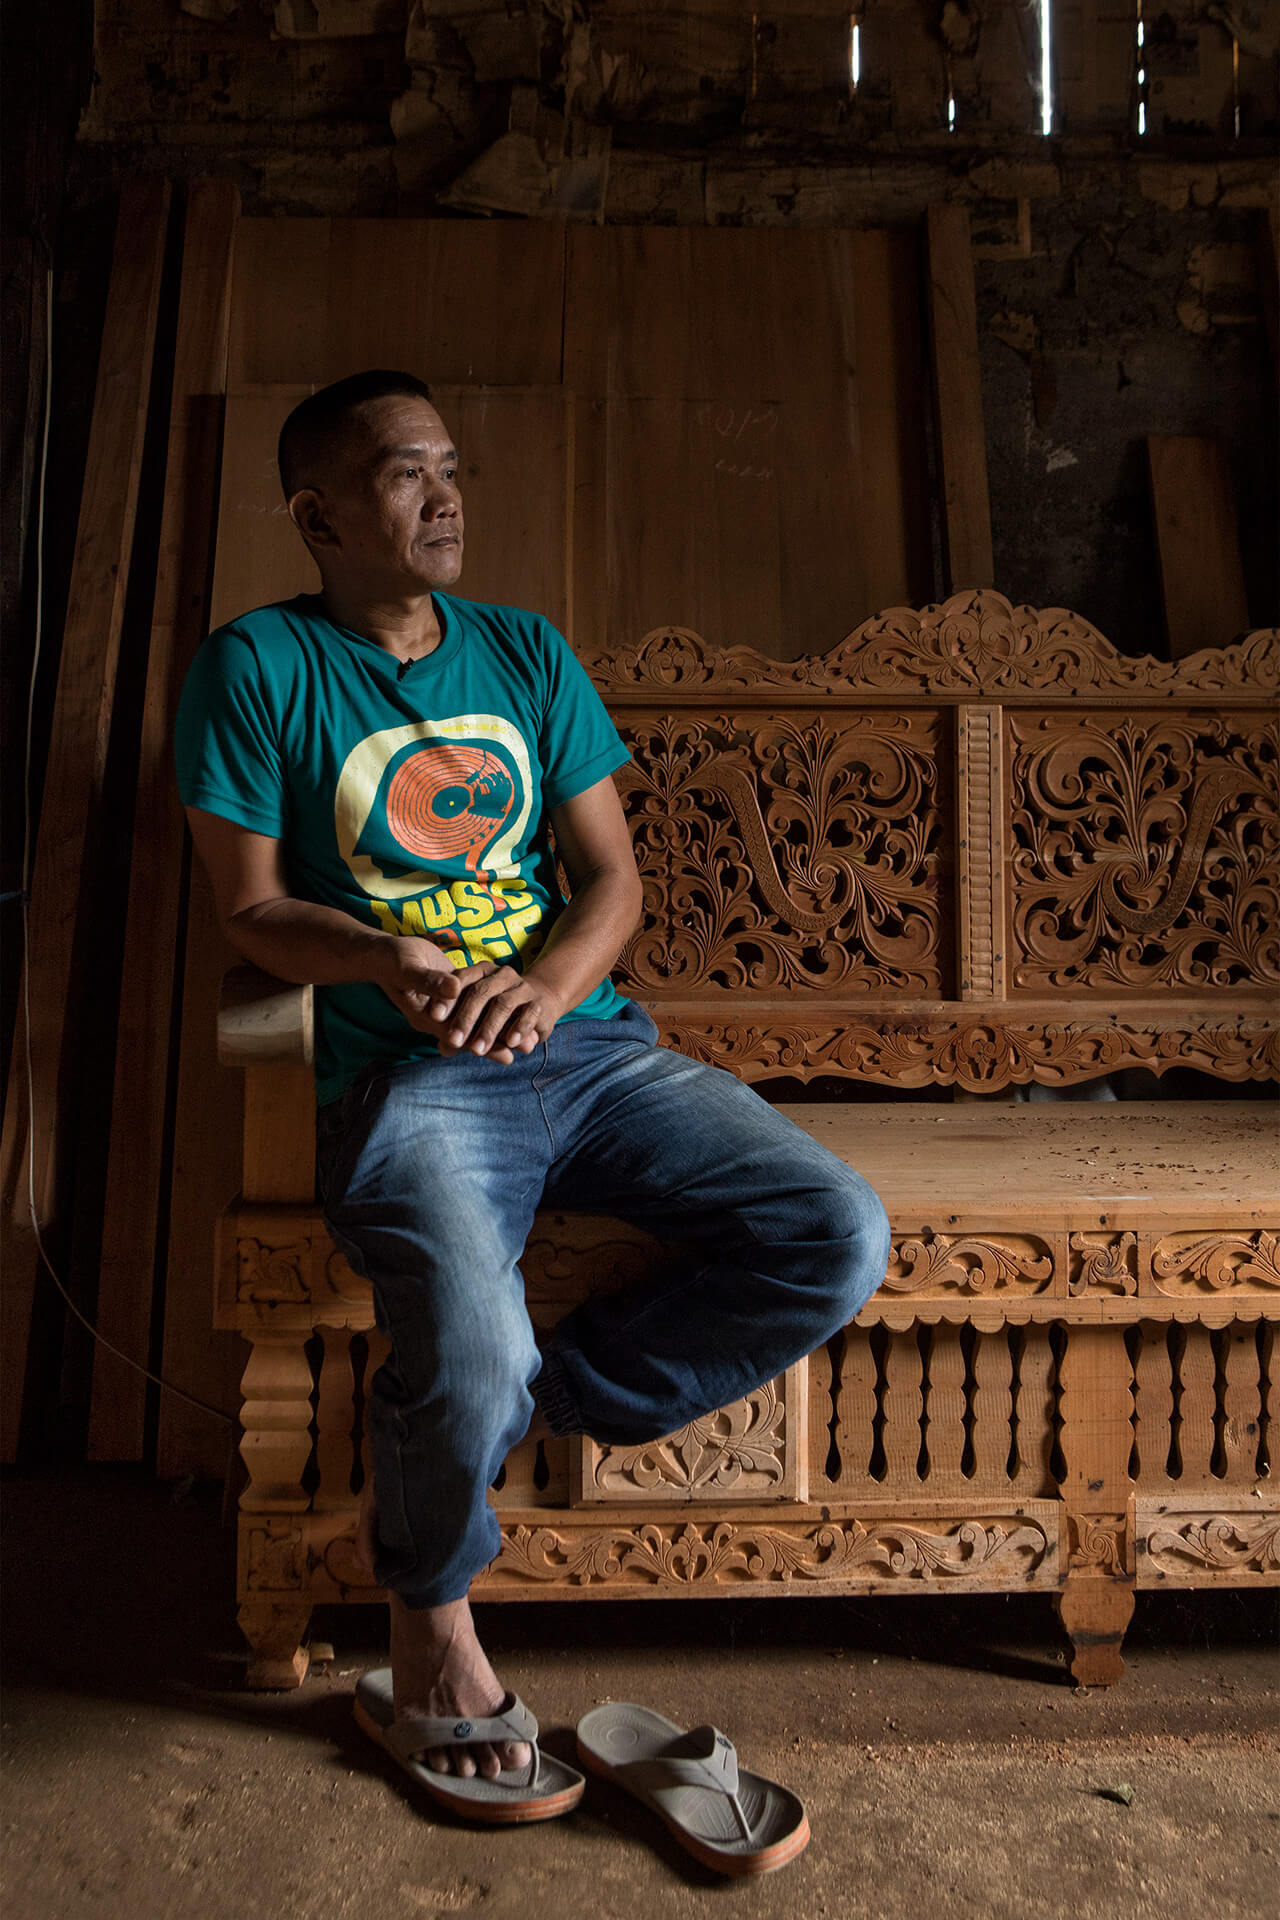 Maranoan craftsman sitting on his finished bench with intricate floral carvings